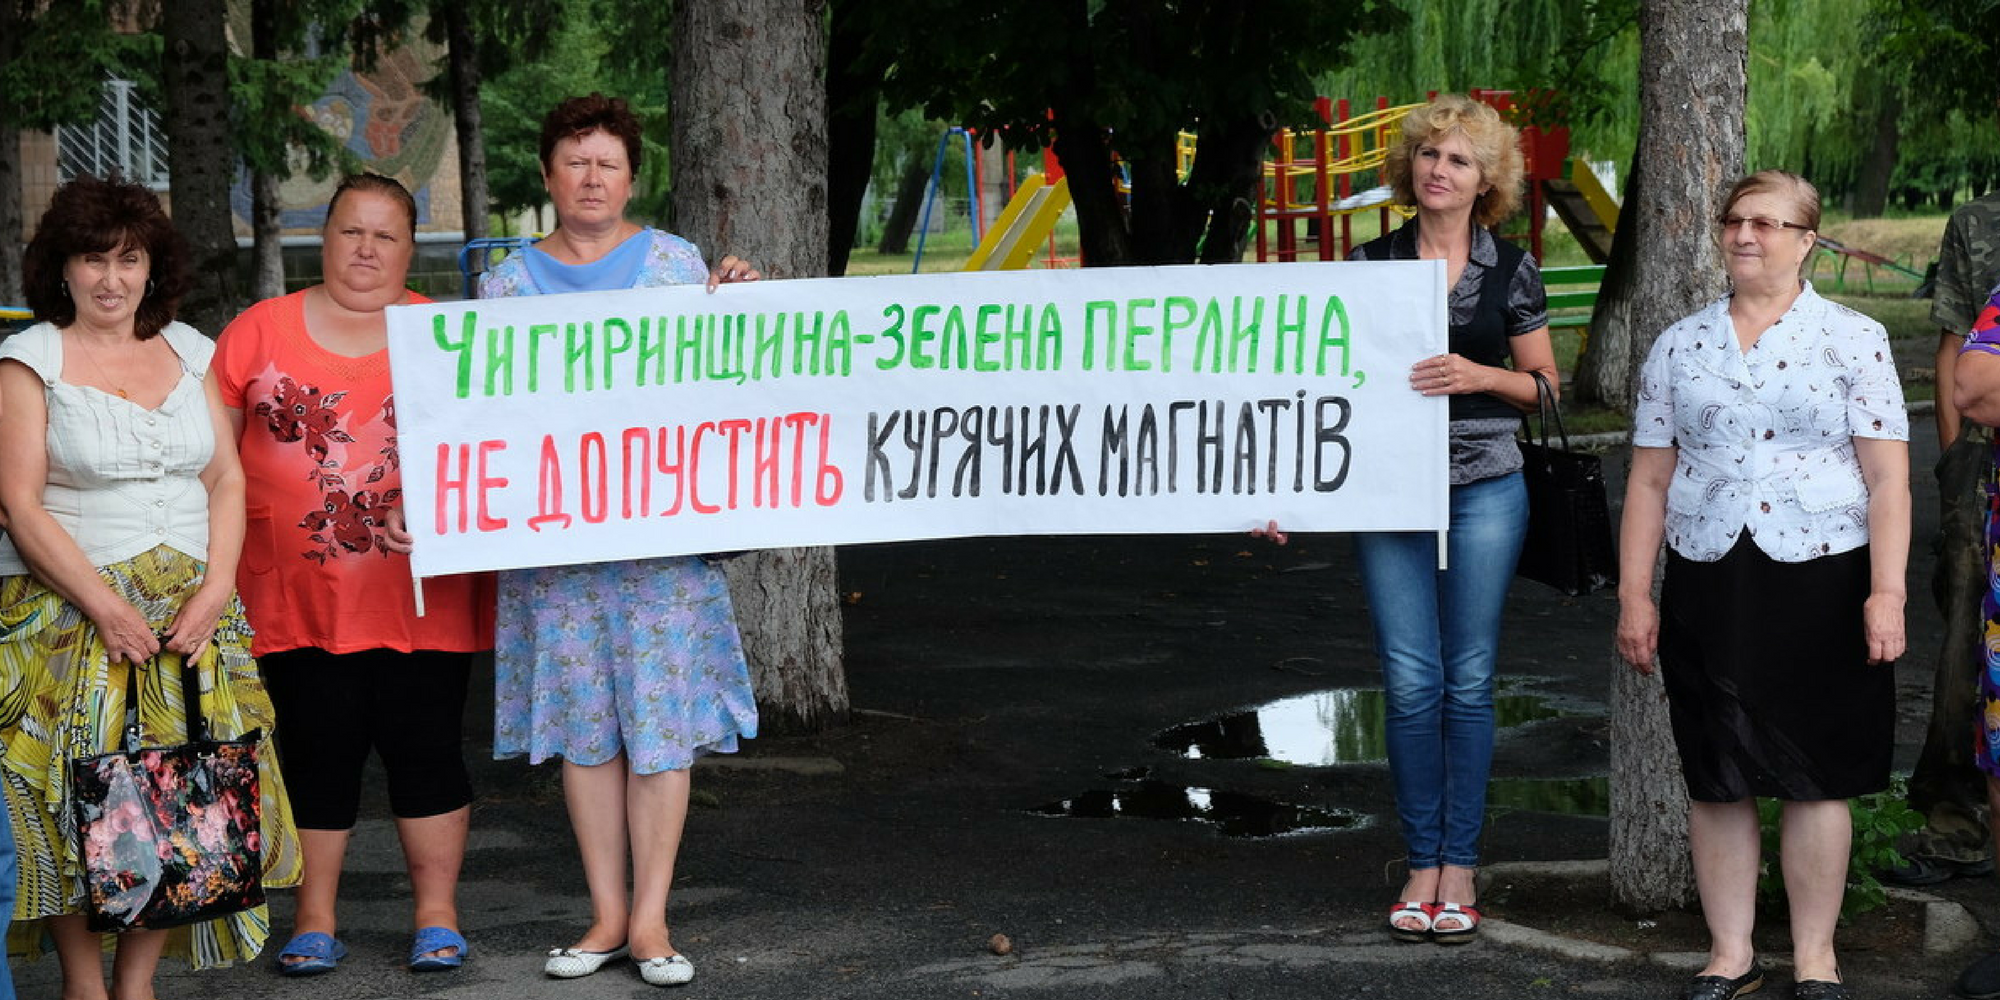 МХП - Украина, MHP Ukraine - poultry producer against local communities